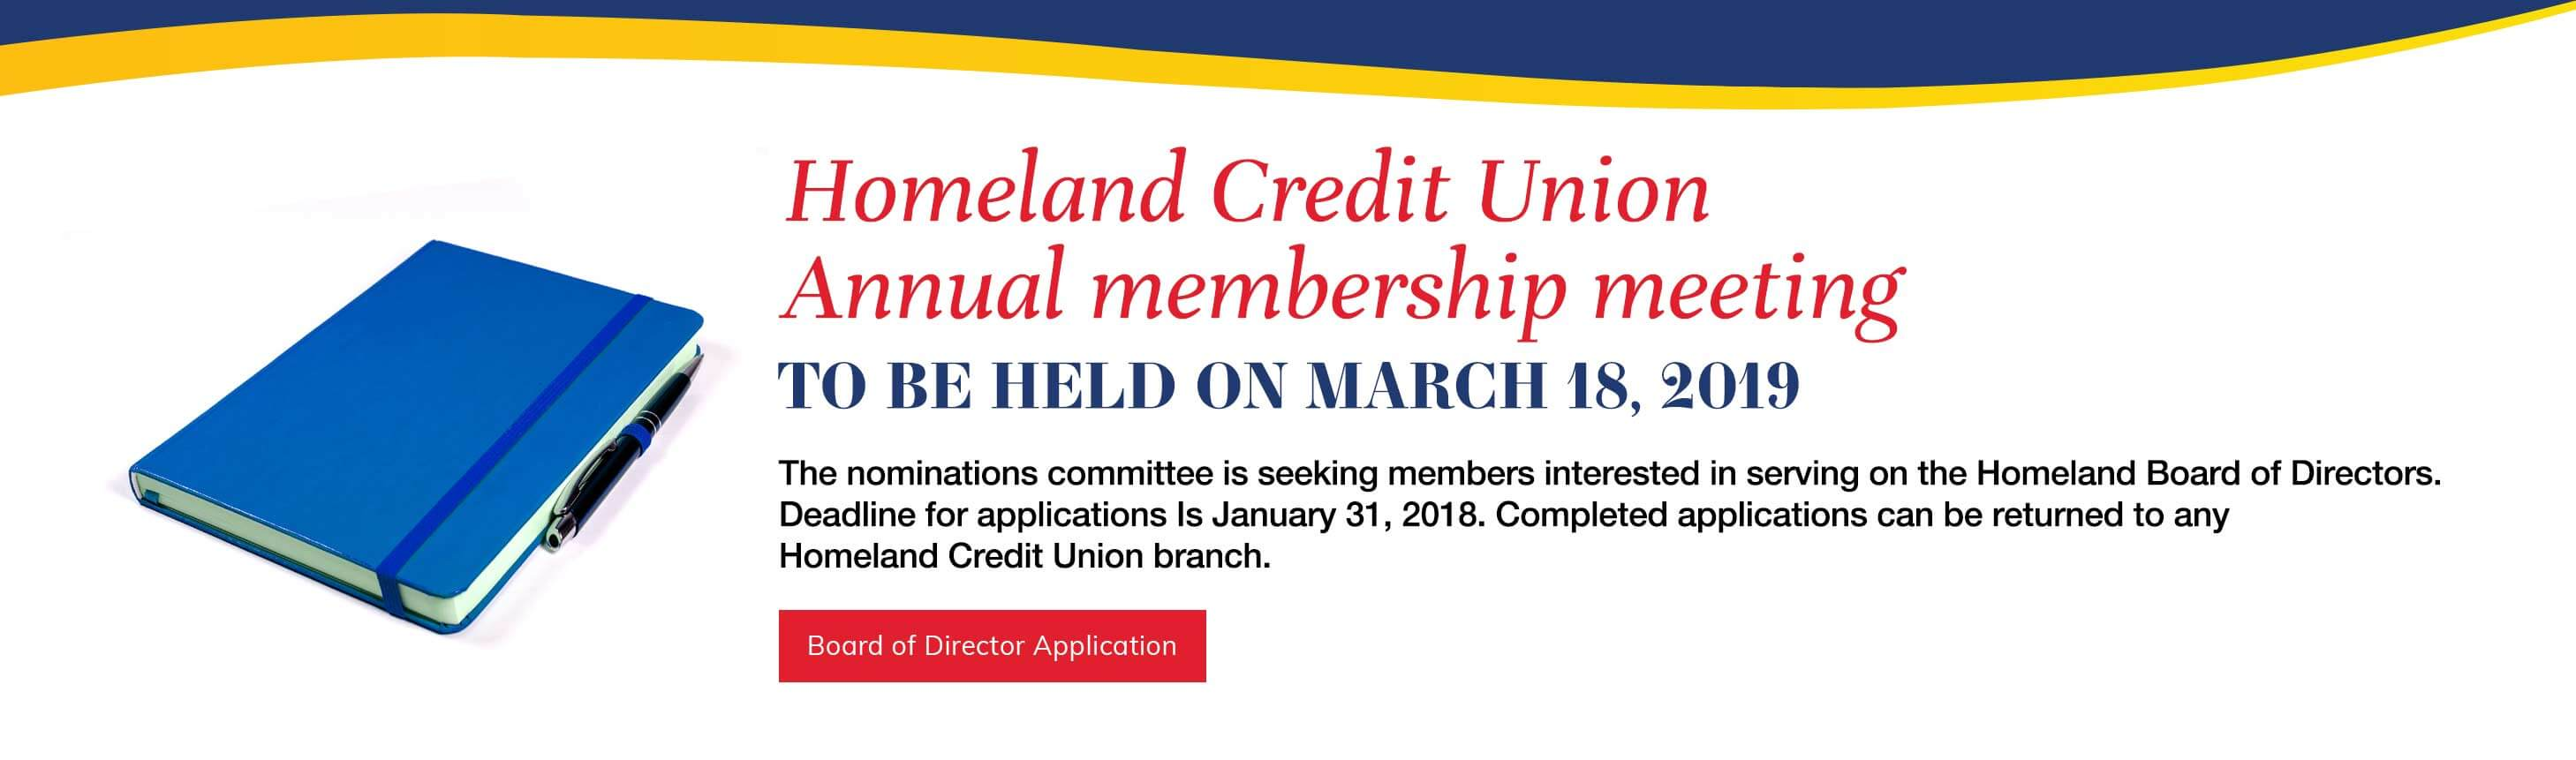 Homeland Credit Union  Annual membership meeting to be held on March 18, 2019. The nominations committee is seeking members interested in serving on  the Homeland Board of Directors. Deadline for applications Is  January 31, 2018. Completed applications can be returned to any  Homeland Credit Union branch. Board of Director Application